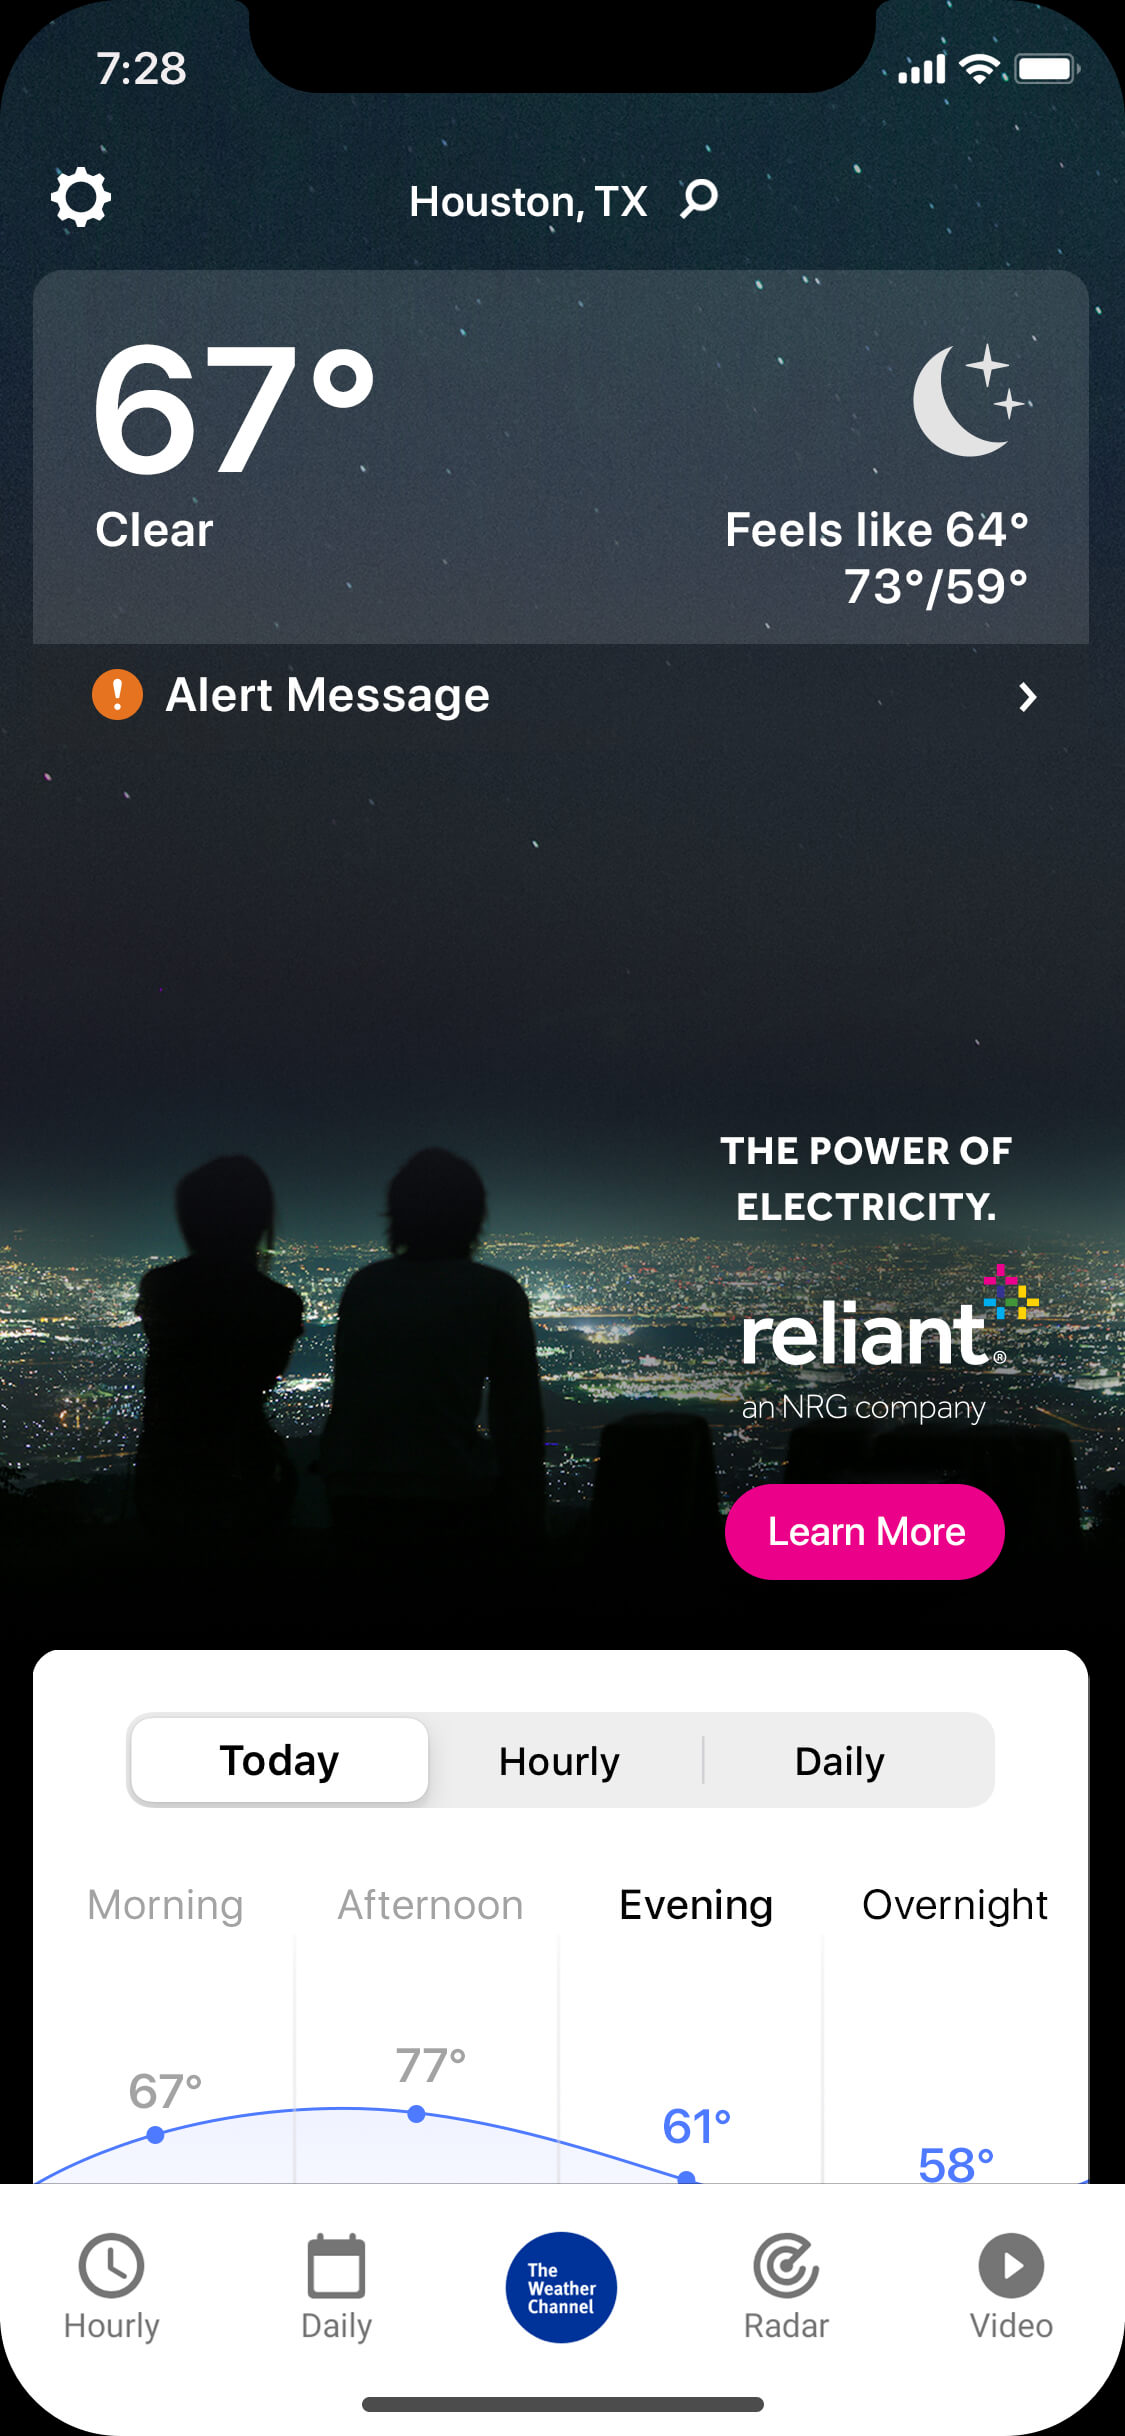 reliant-clear-night